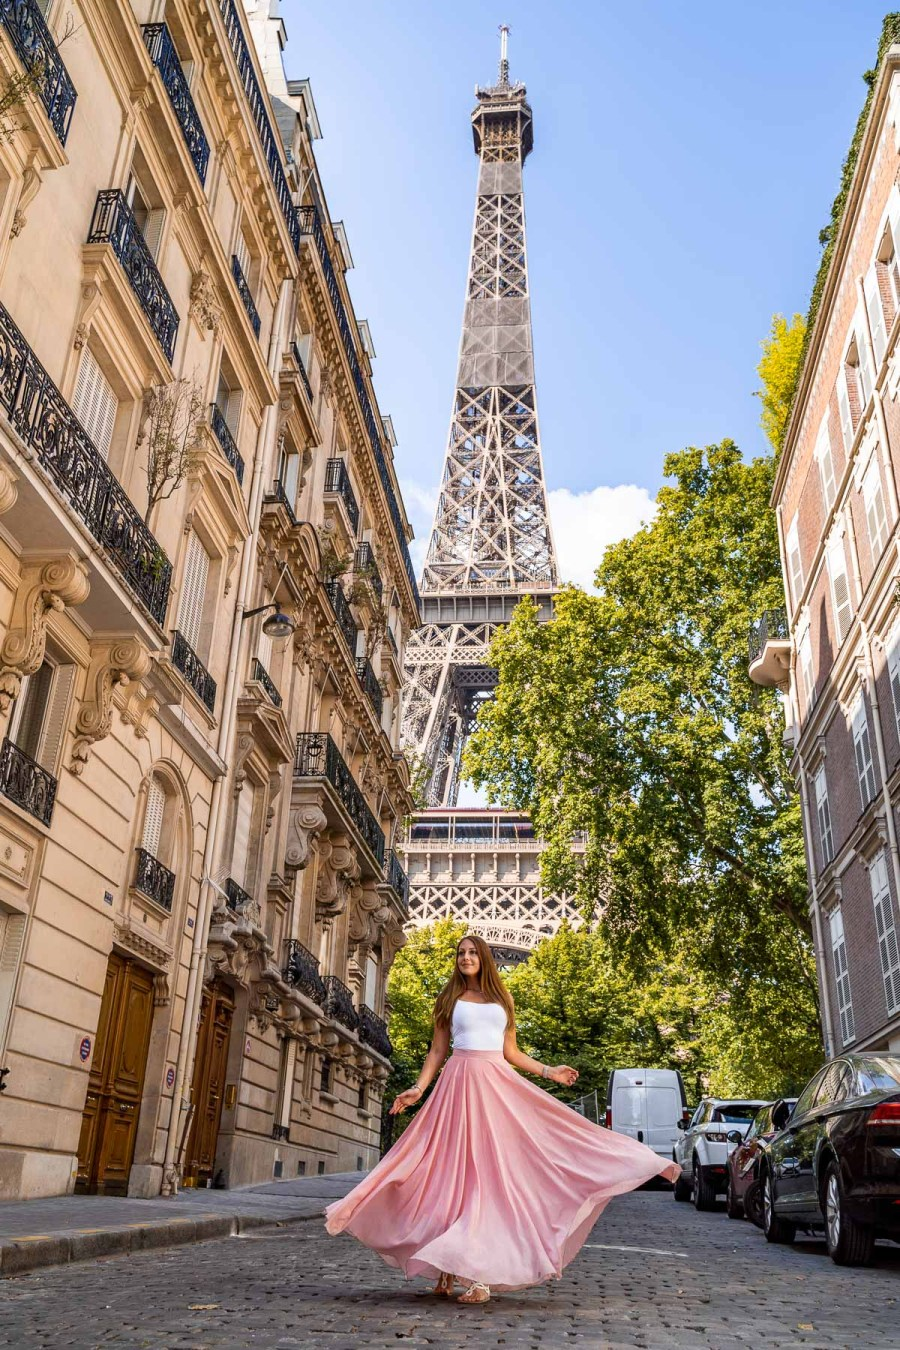 Girl in a pink skirt twirling in front of the Eiffel Tower in Rue de l'Université, one of the most instagrammable places in Paris